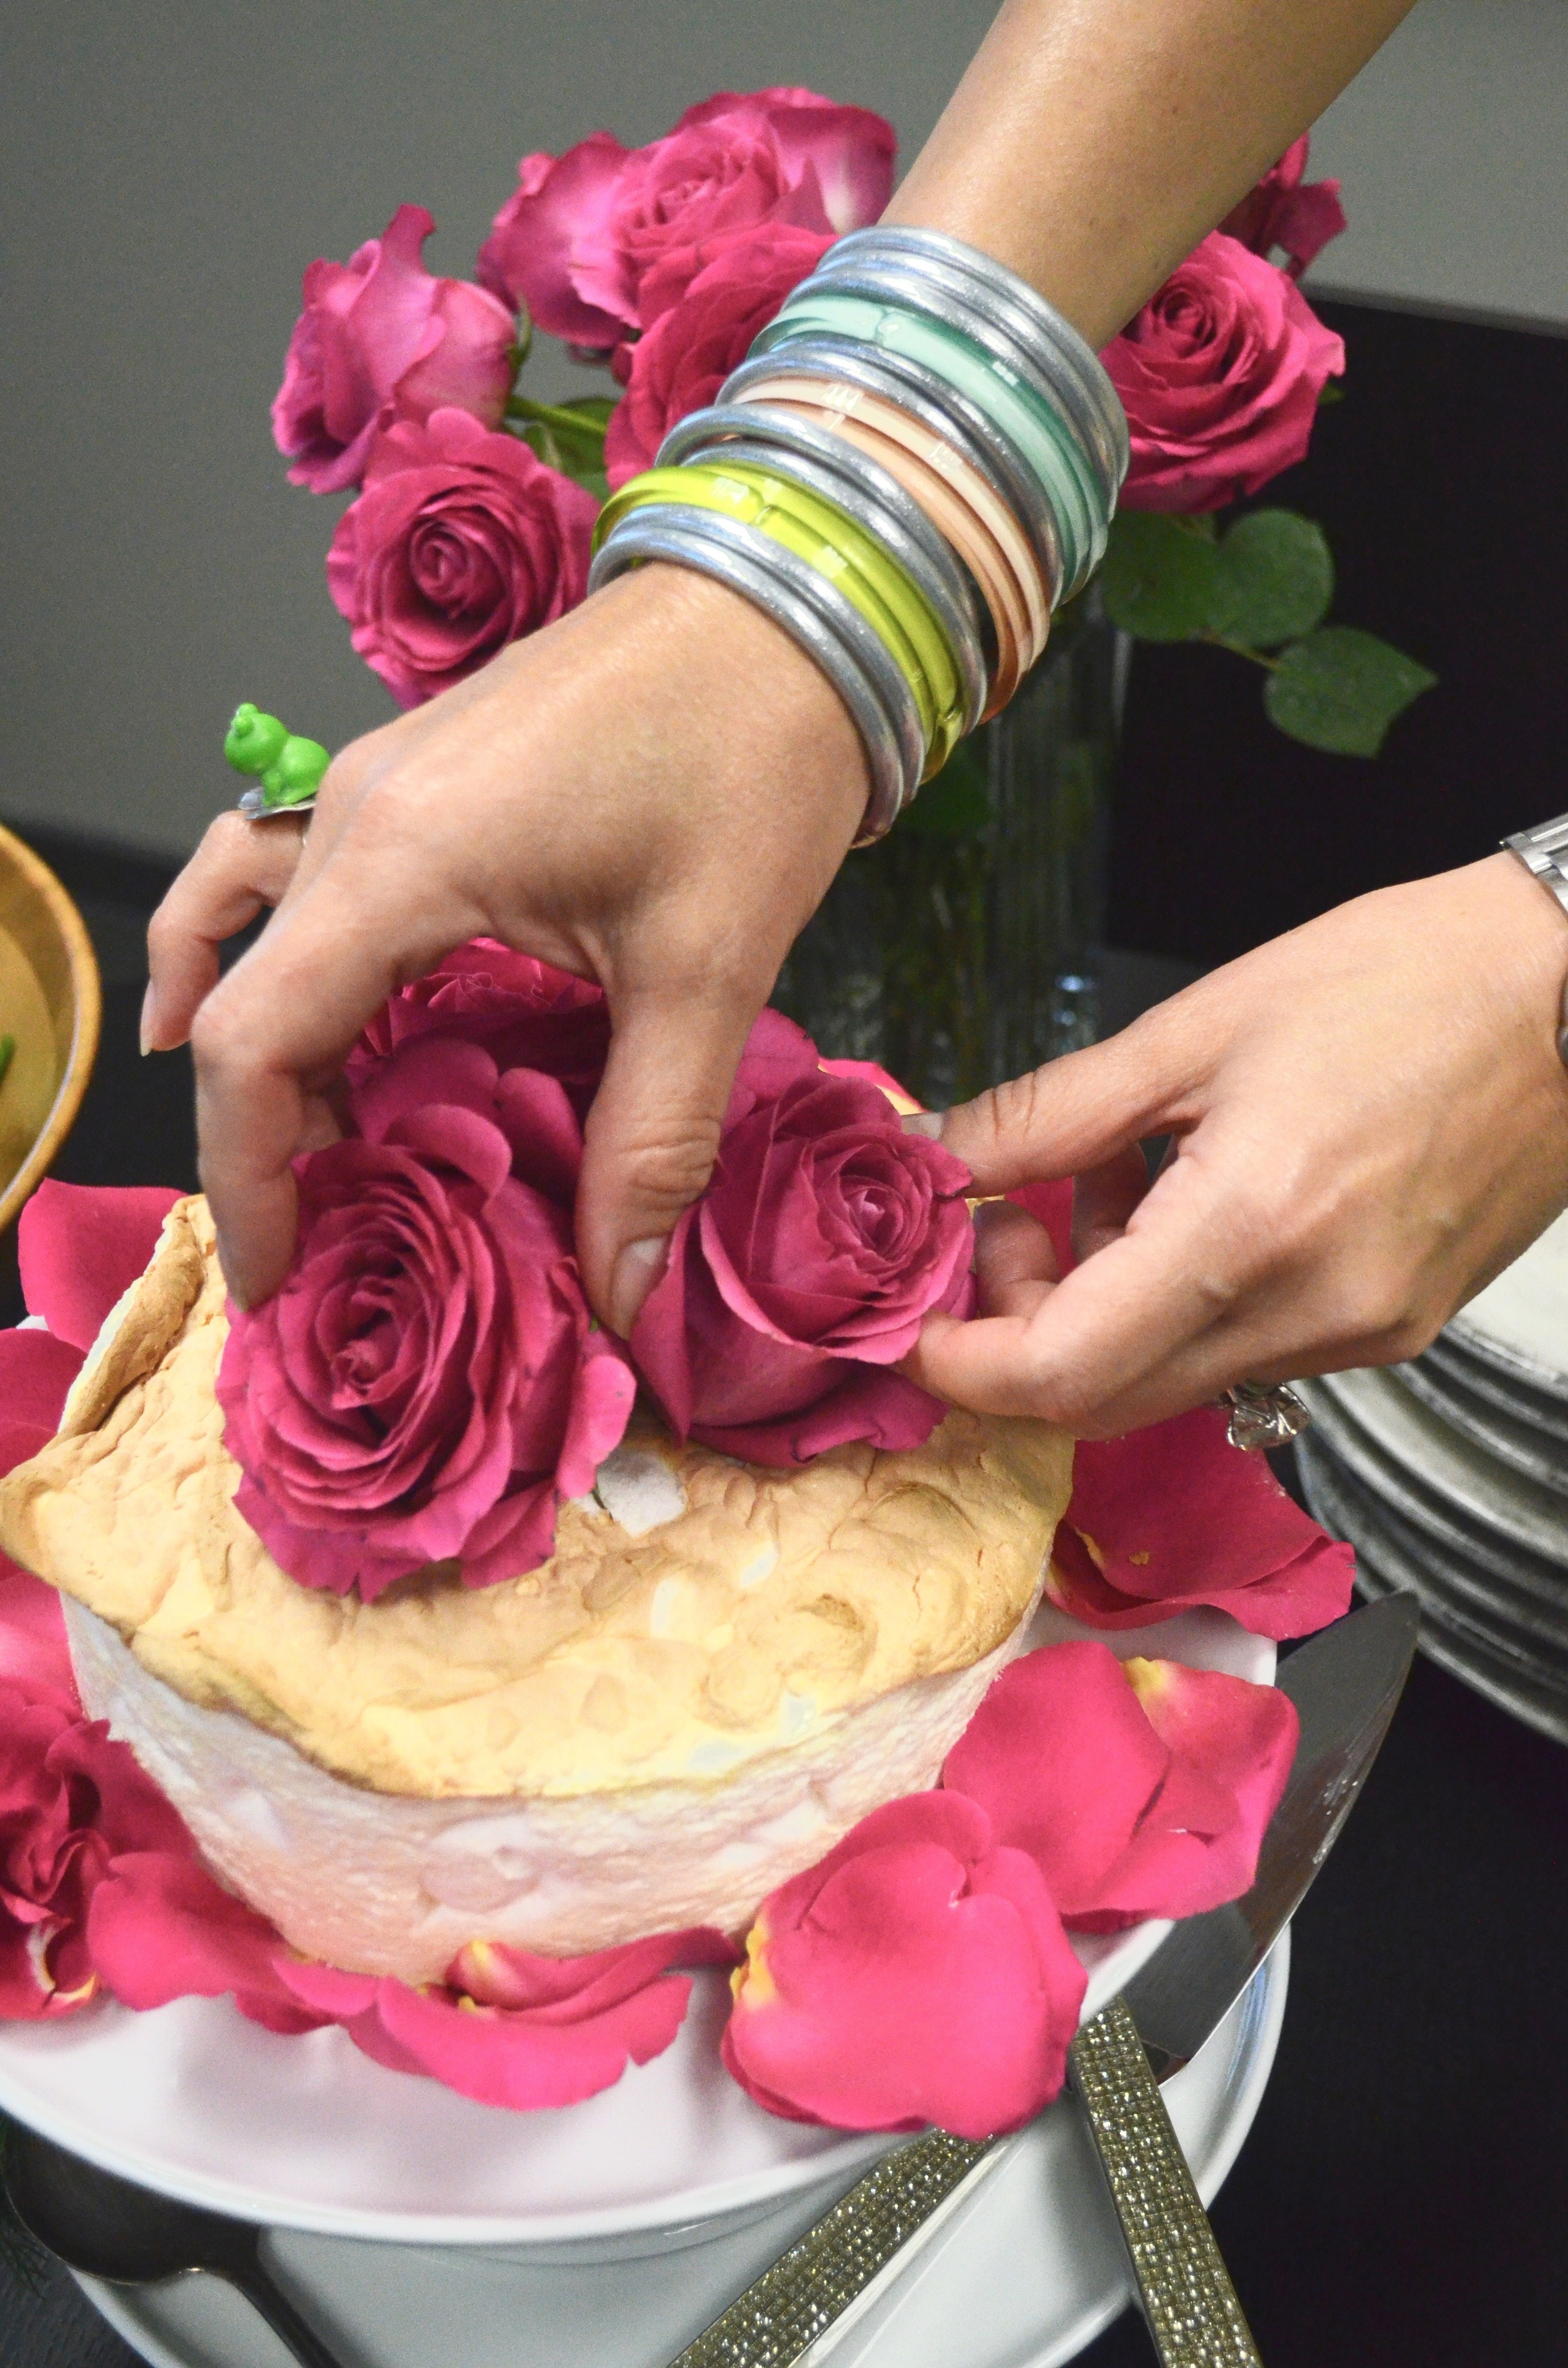 Lemon meringue cake decorated with fresh roses.